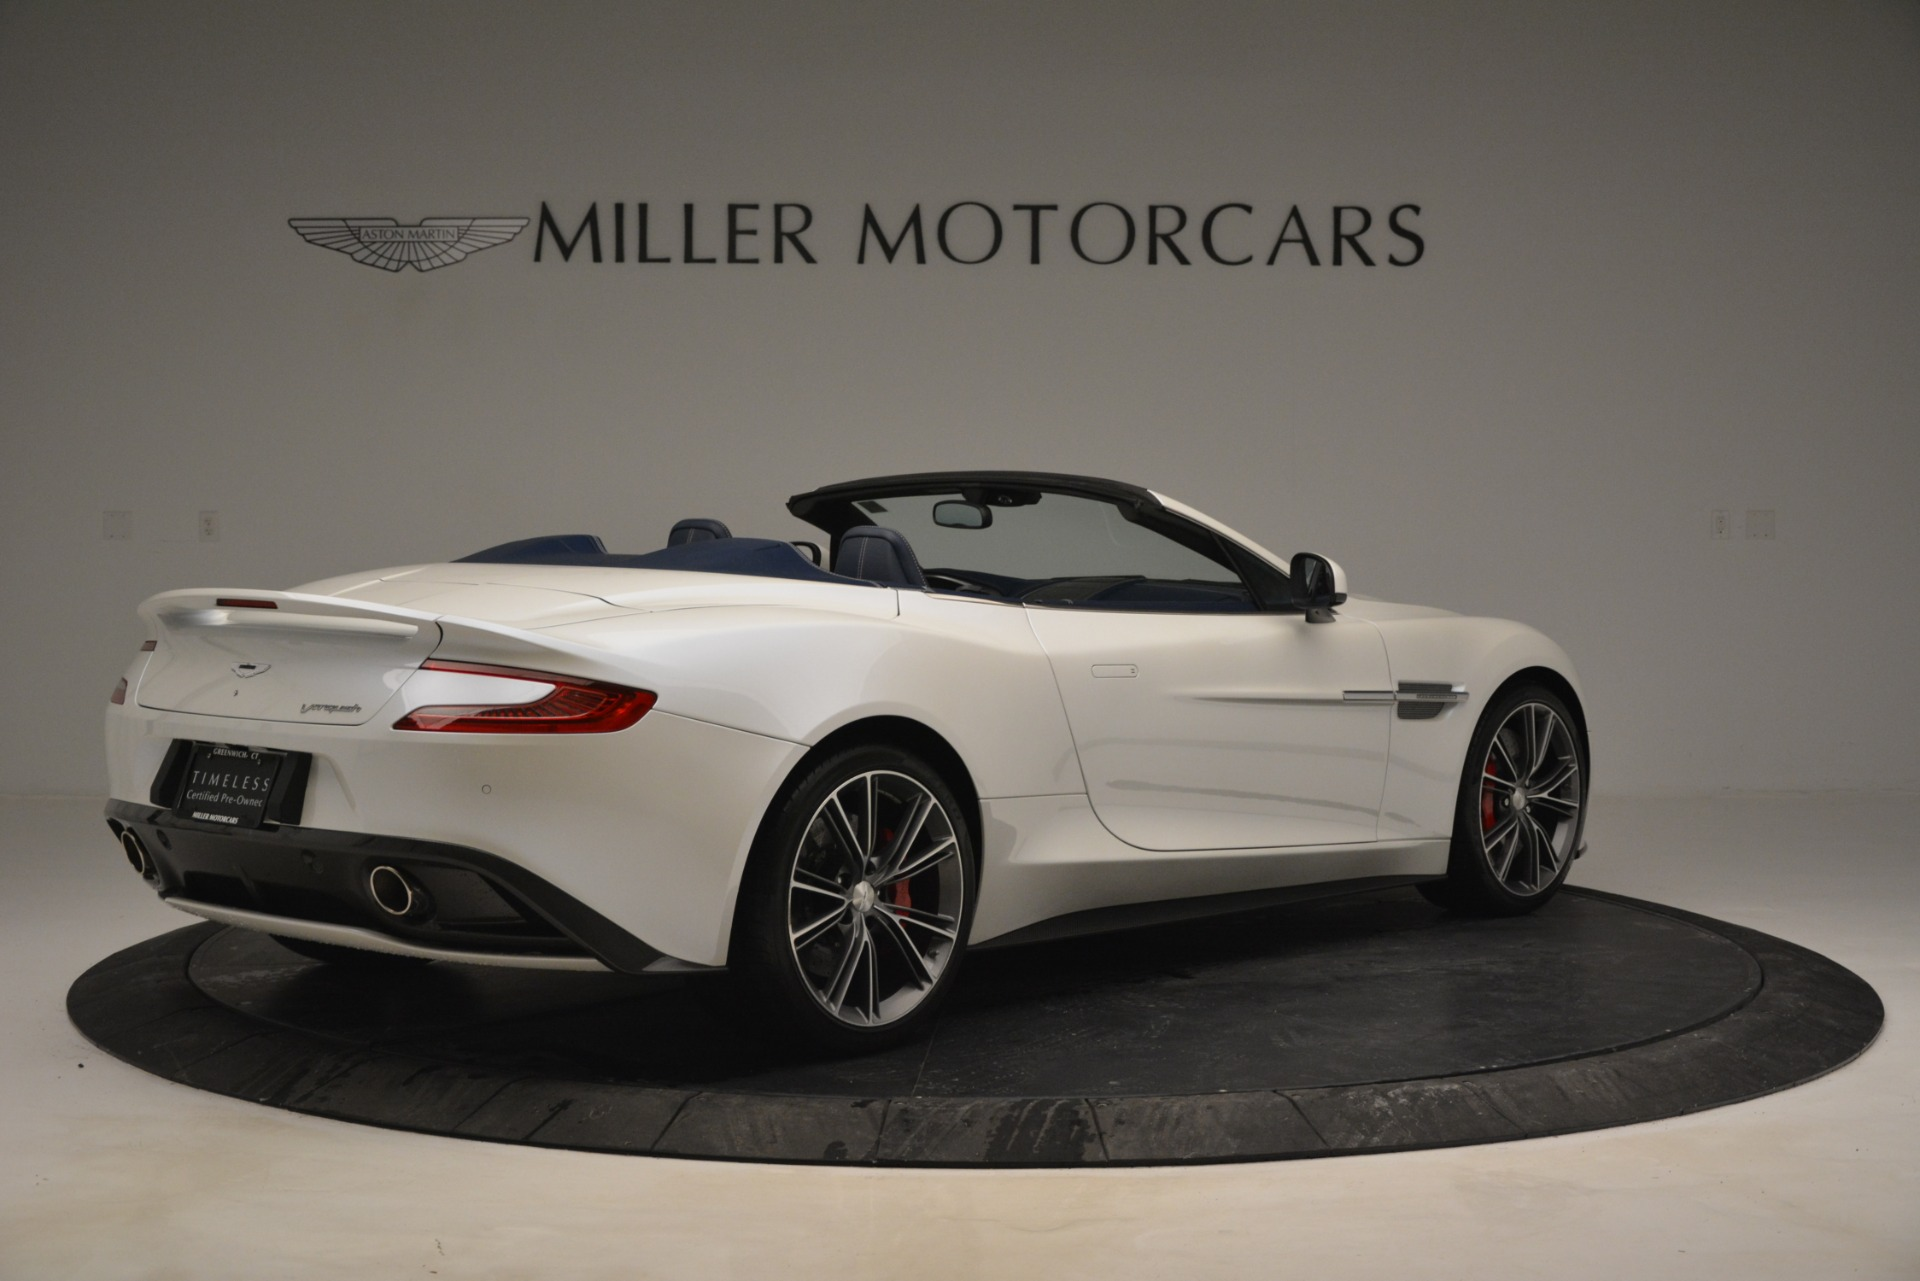 Used 2015 Aston Martin Vanquish Convertible For Sale In Westport, CT 2982_p8